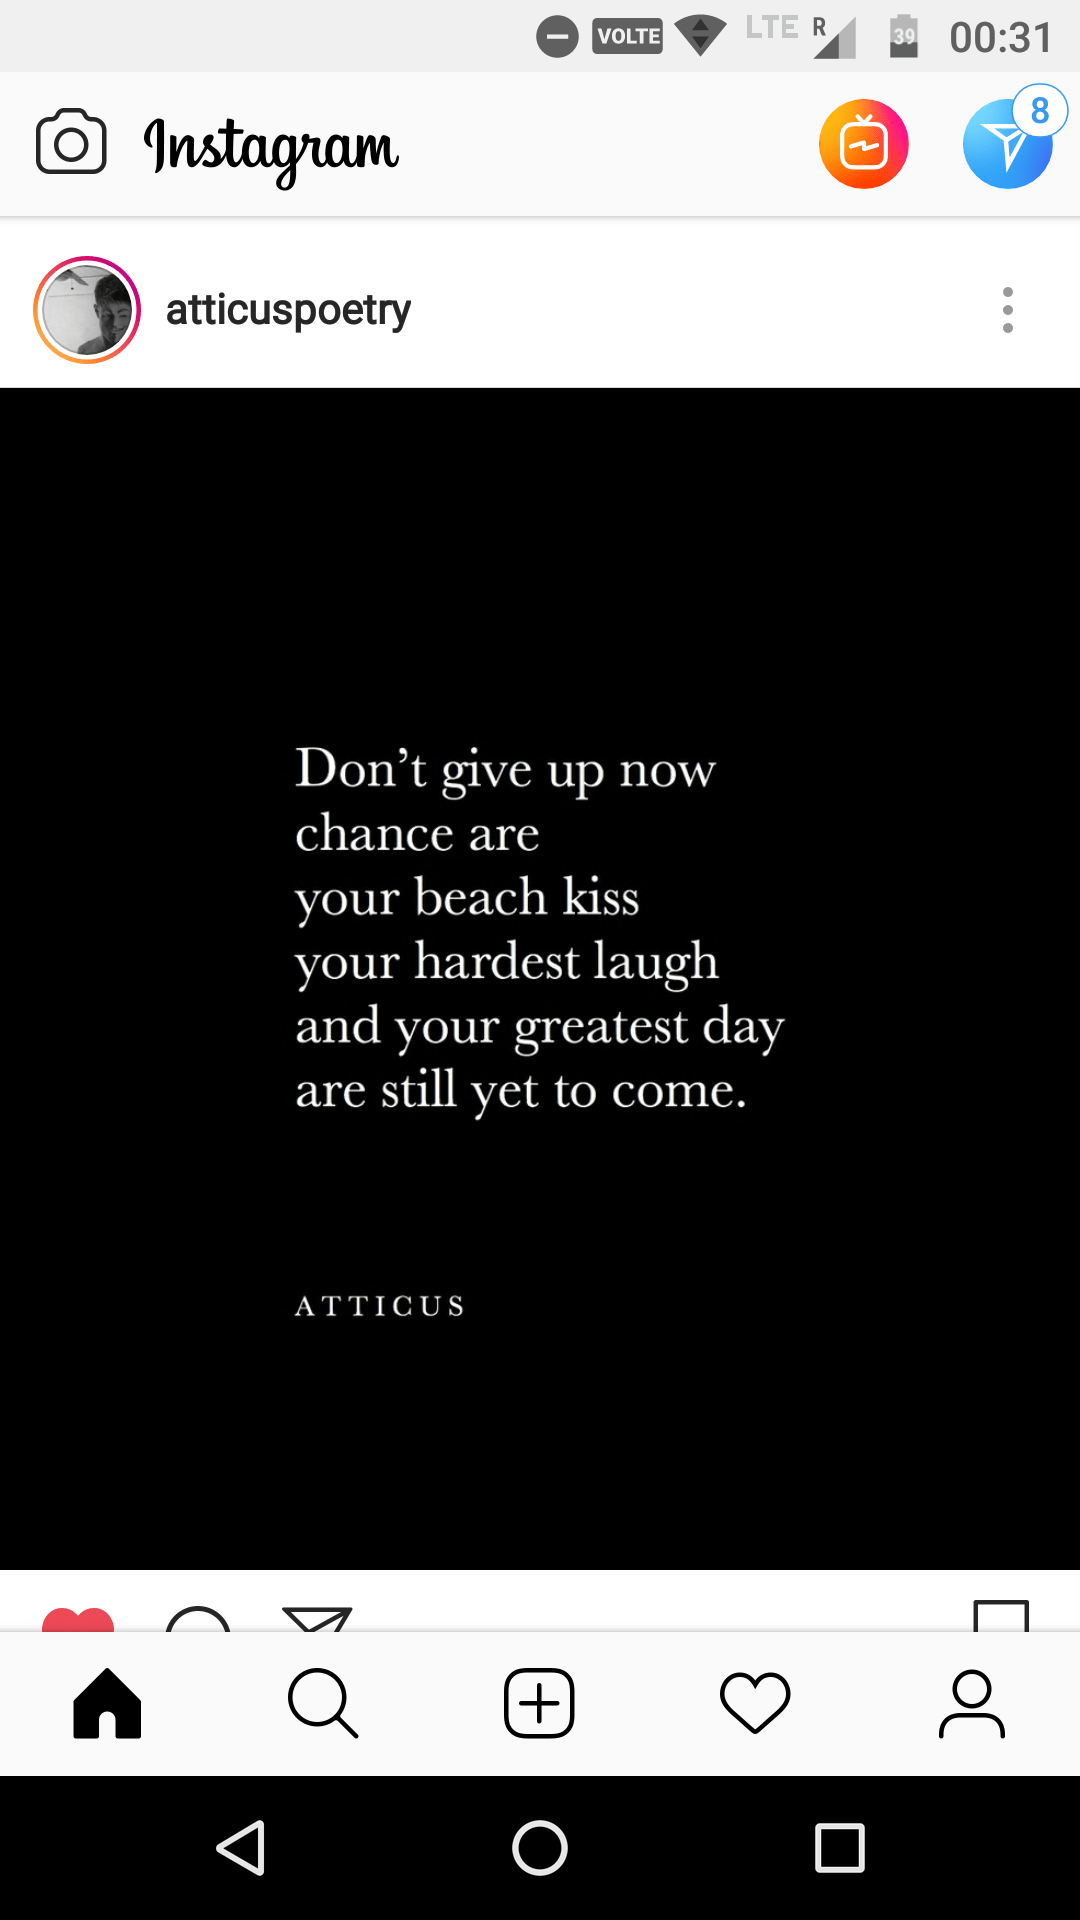 [Image] Don't give up just yet